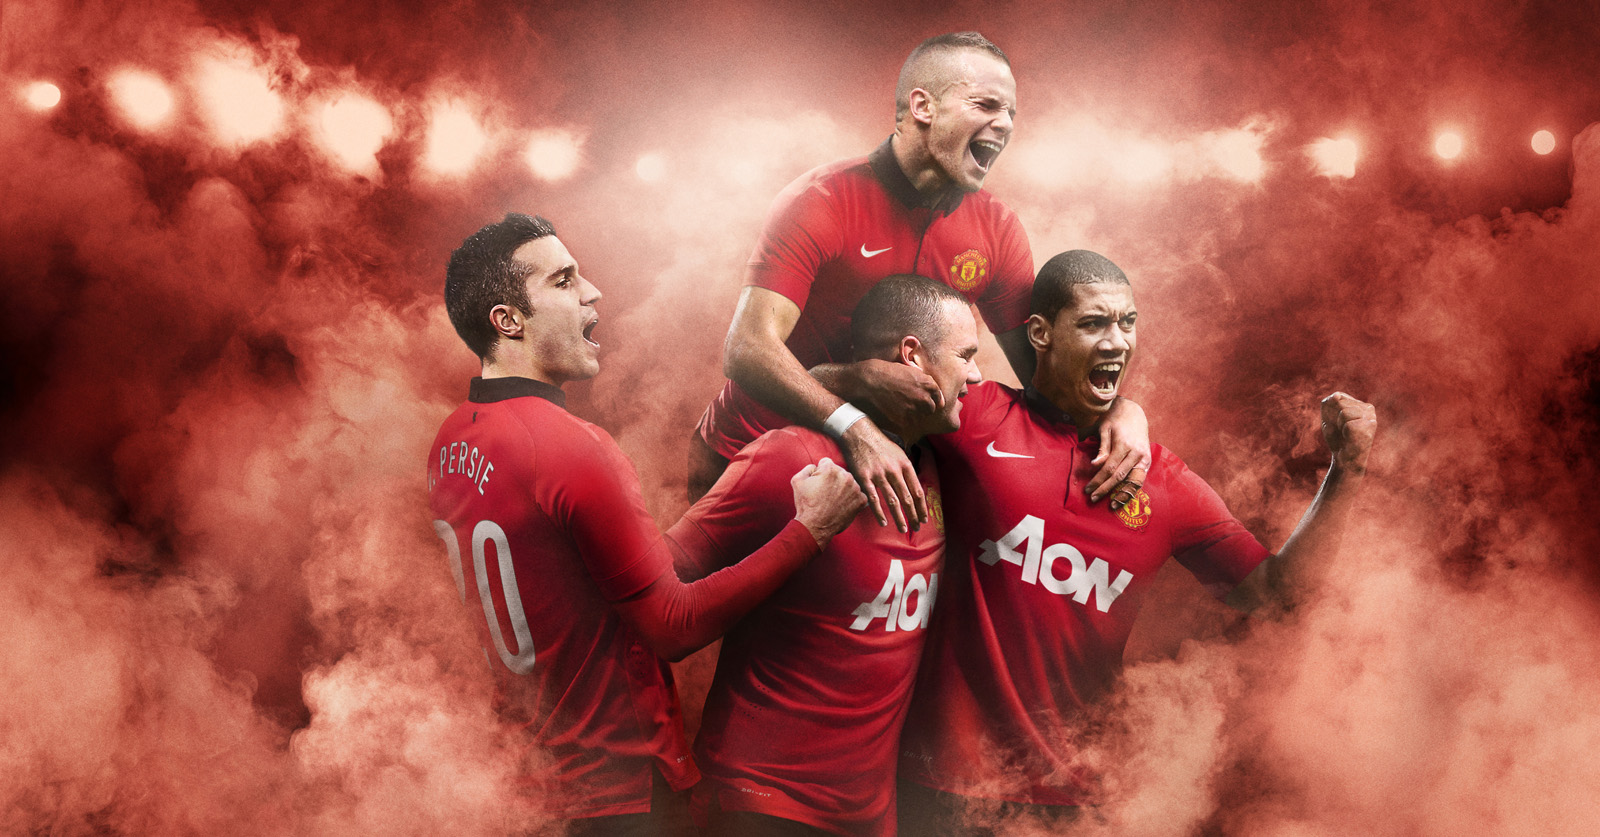 Manchester United Chevrolet Wallpaper Manchester United Today